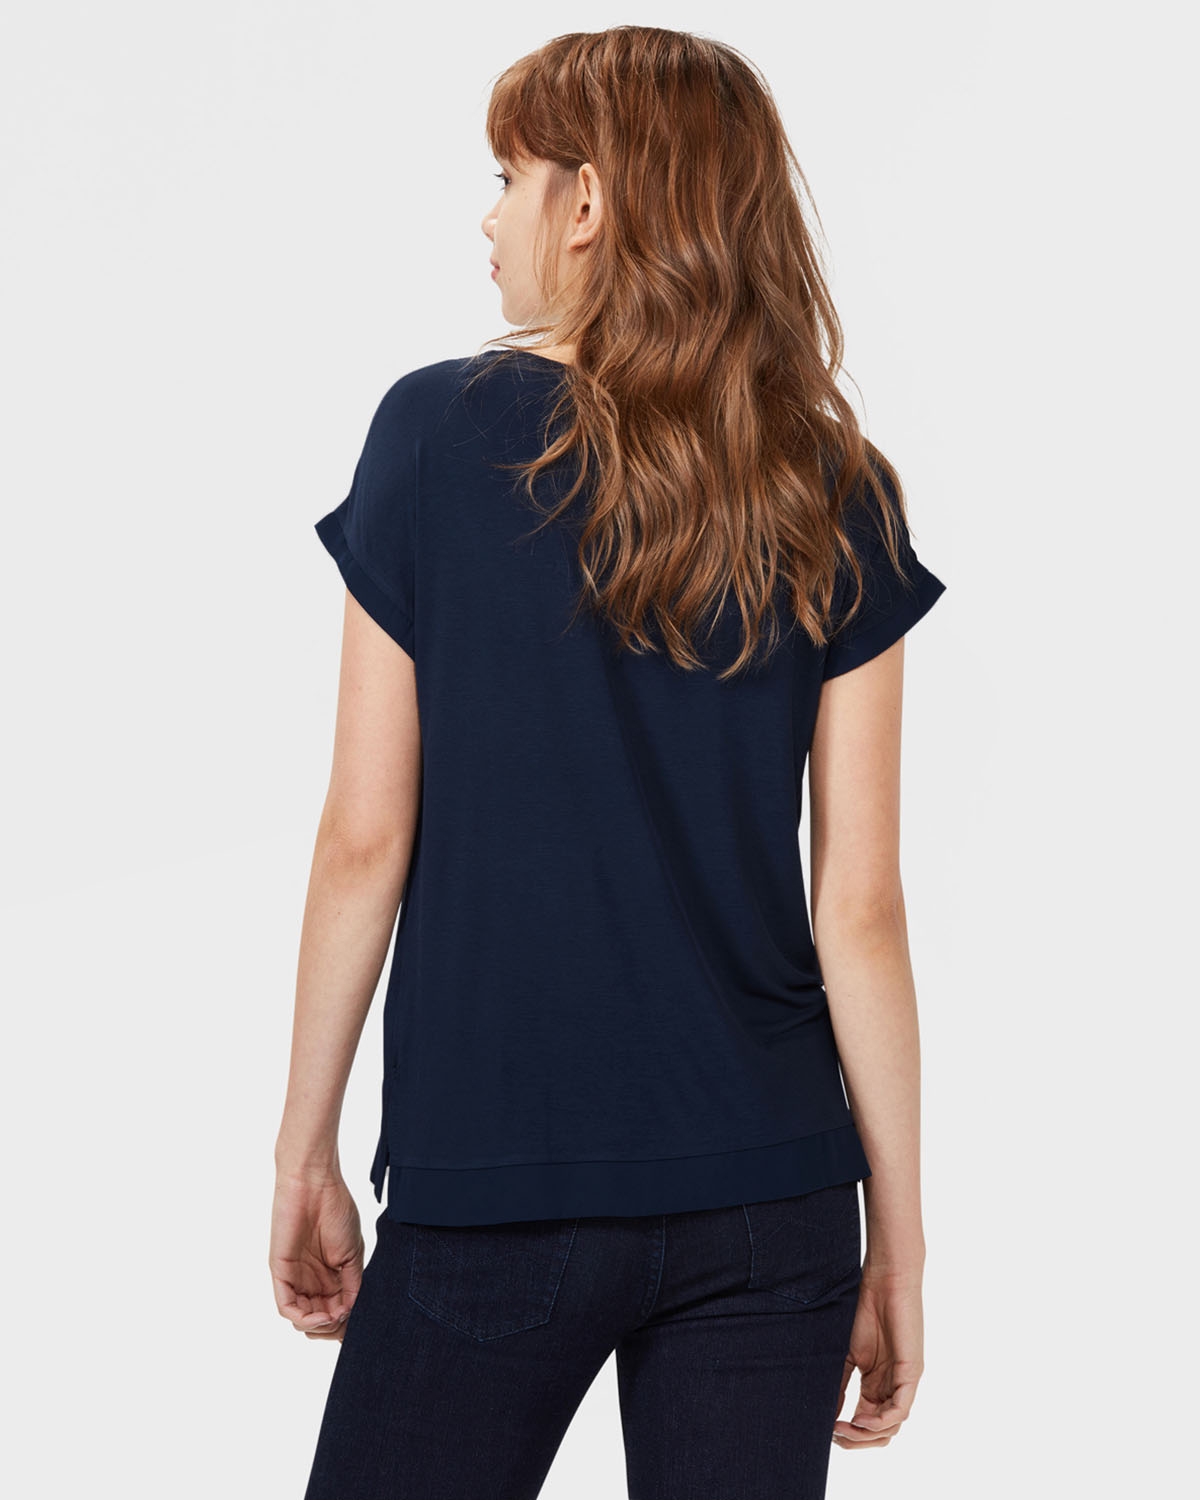 damen t shirt mit v ausschnitt 79207201 we fashion. Black Bedroom Furniture Sets. Home Design Ideas